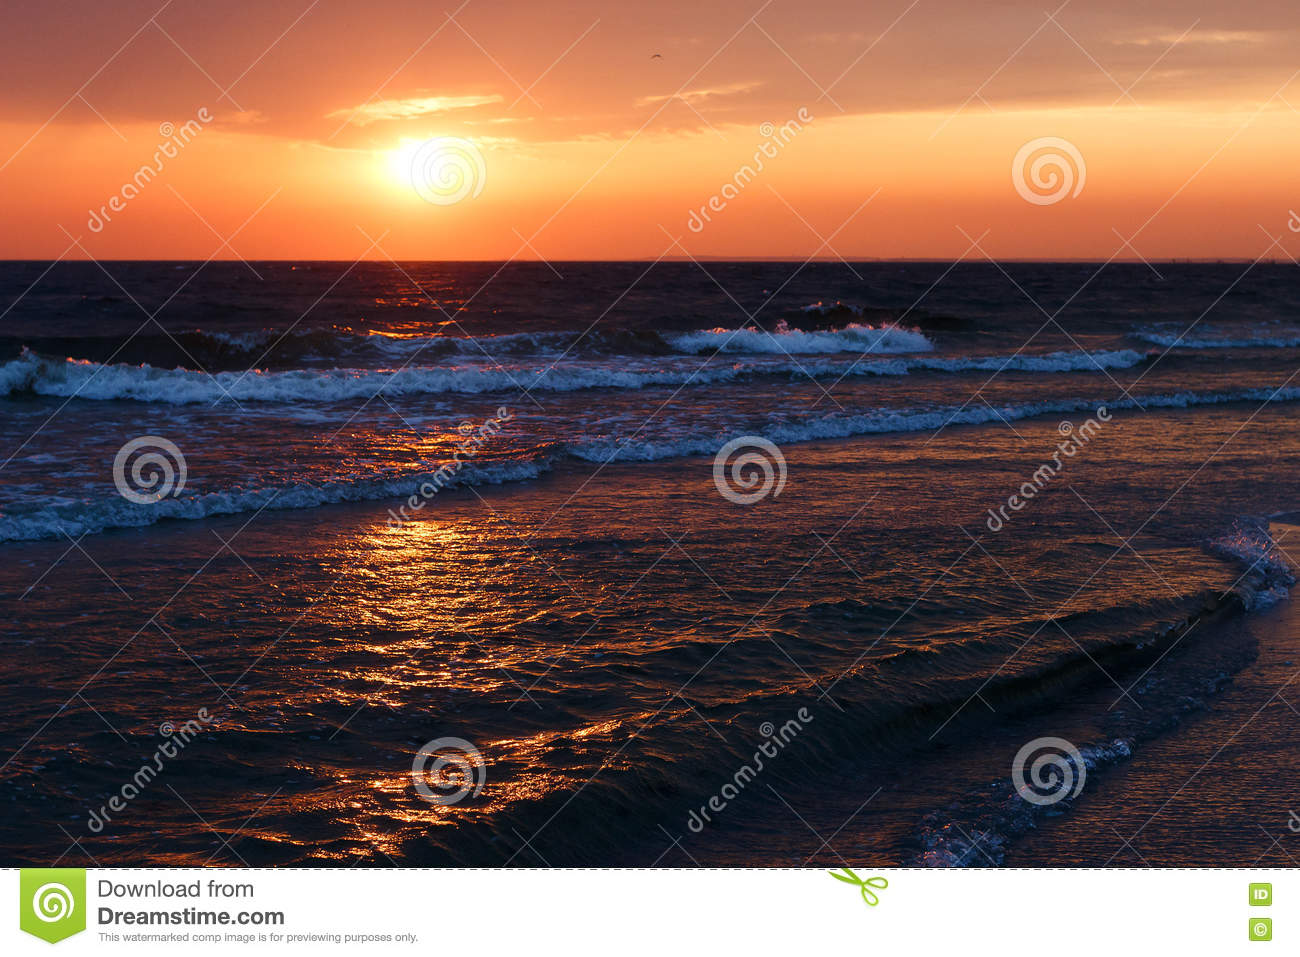 Download Beautiful Golden Sunset In The Sea With Saturated Sky And Clouds. Reflection In The Water. Rocky Coastal Line. Peaceful Serene Lan Stock Photo - Image of glow, beach: 77726146